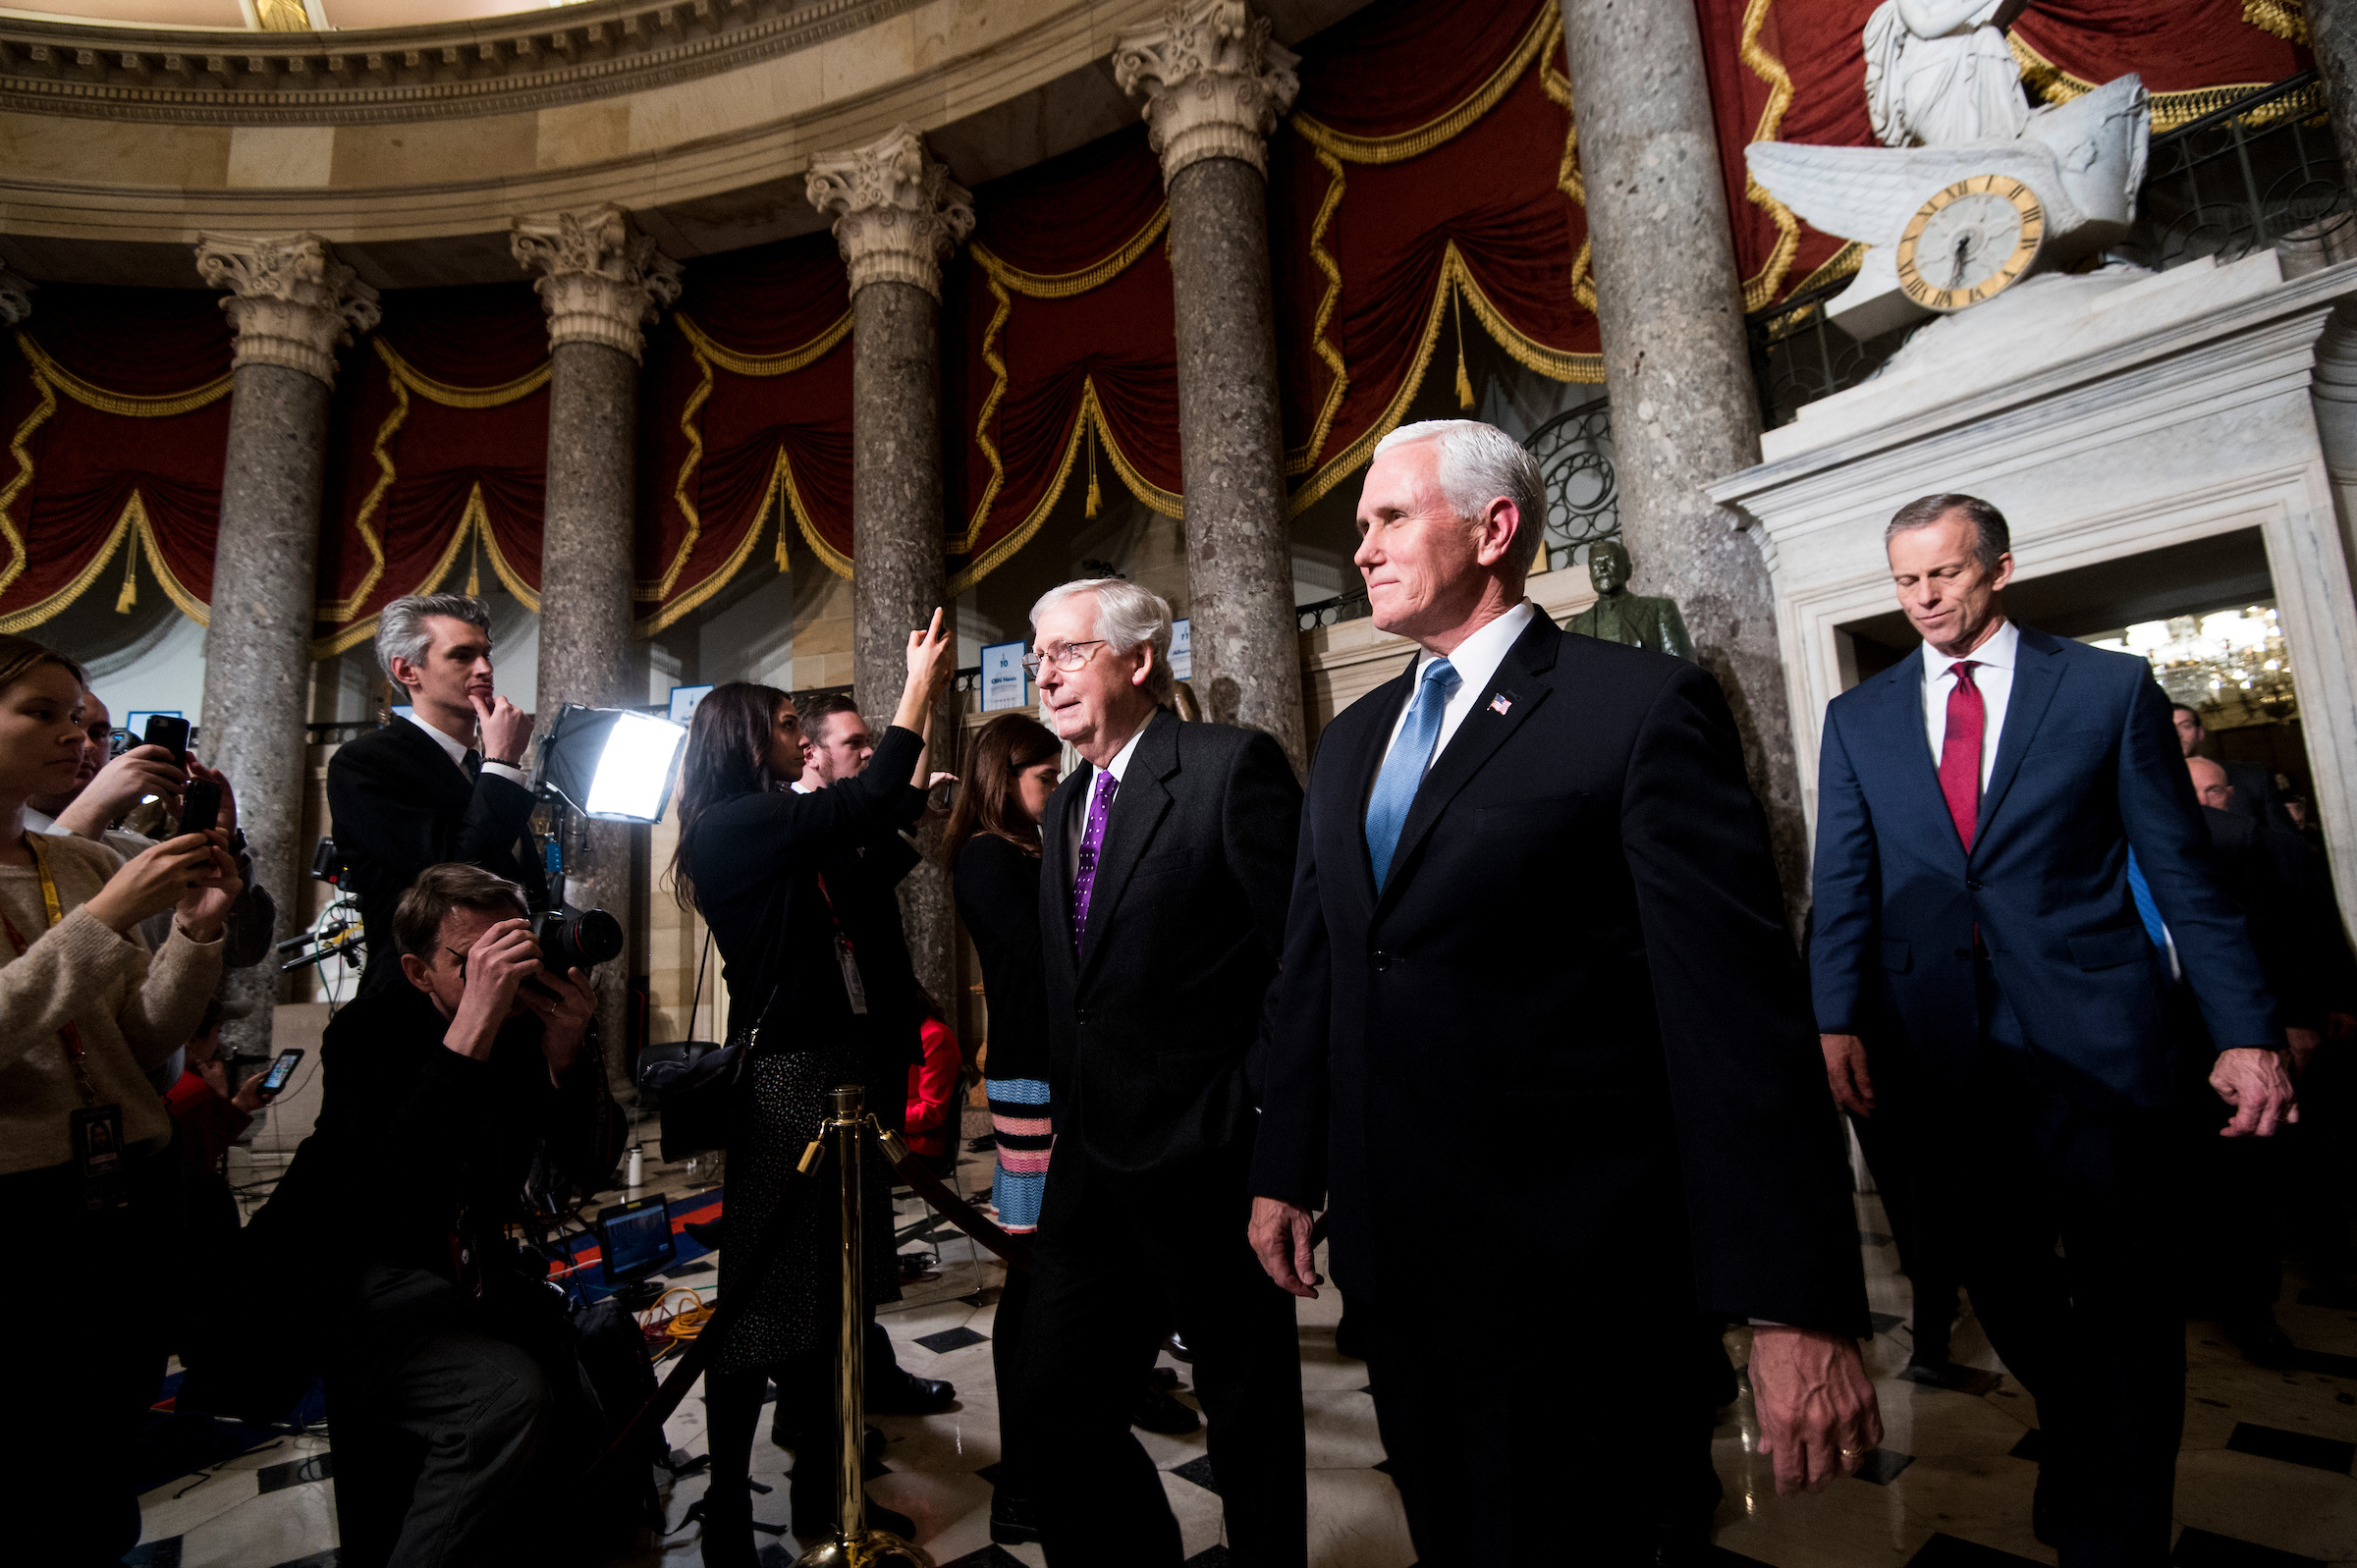 UNITED STATES - FEBRUARY 04: From left, Senate Majority Leader Mitch McConnell, R-Ky., Vice President Mike Pence and Sen. John Thune, R-S. Dak., walk through Statuary Hall to the House chamber before the start of President Donald Trump's State of the Union address on Tuesday, February 4, 2020. (Photo By Bill Clark/CQ Roll Call)